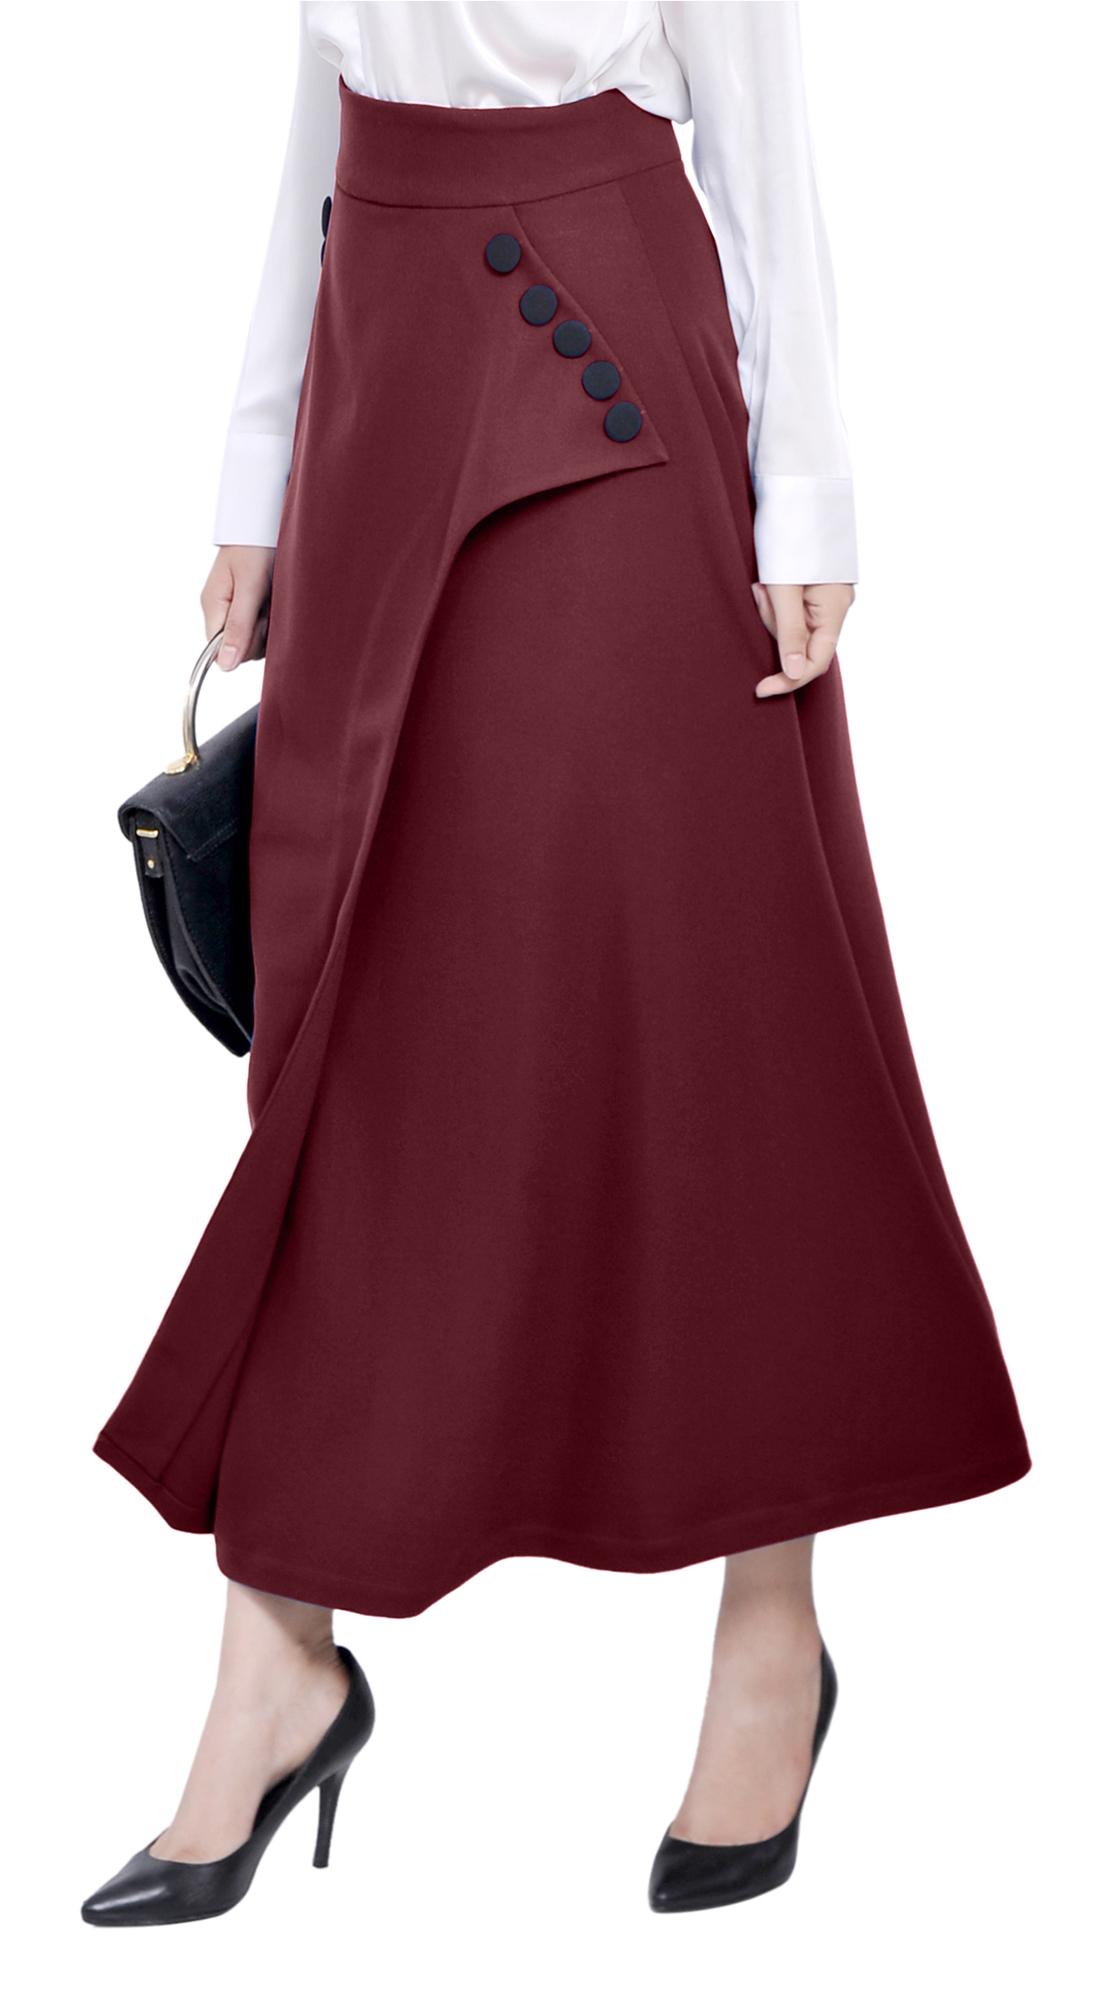 MARYCRAFTS WOMENS OFFICE WORK BUSINESS PARTY A LINE WRAP ...